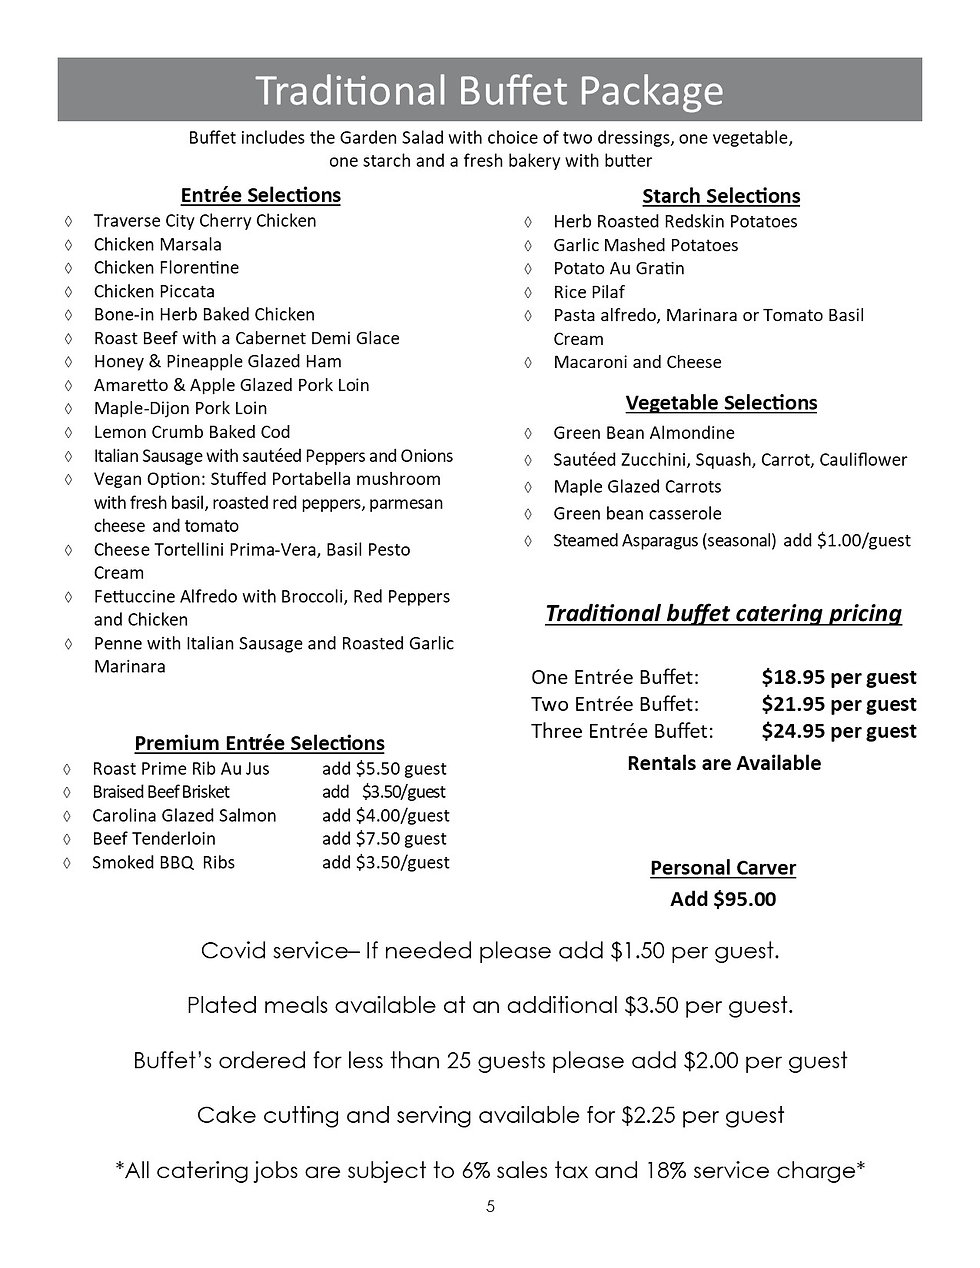 Trout town catering NEW 2021 pg5.jpg